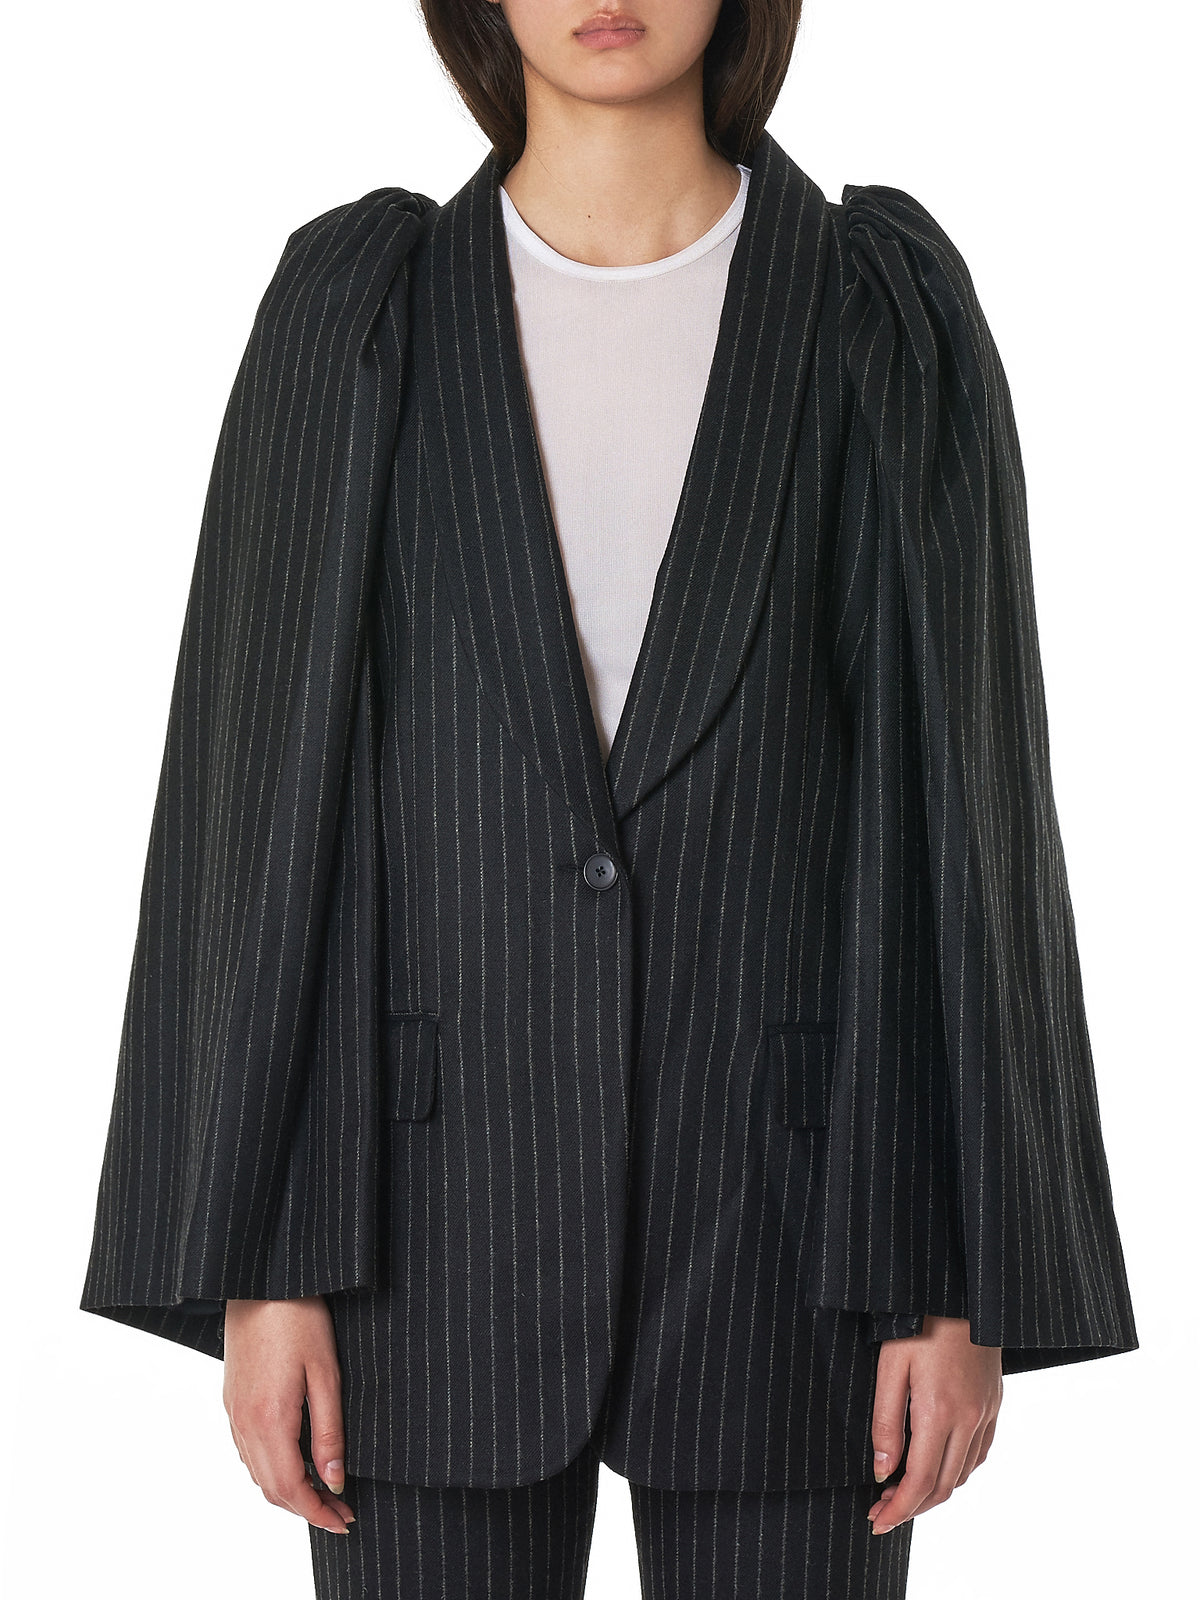 'Oversleeve' Smoking Jacket (OVERSLEEVE-SMOKING-LU2039-BLK)